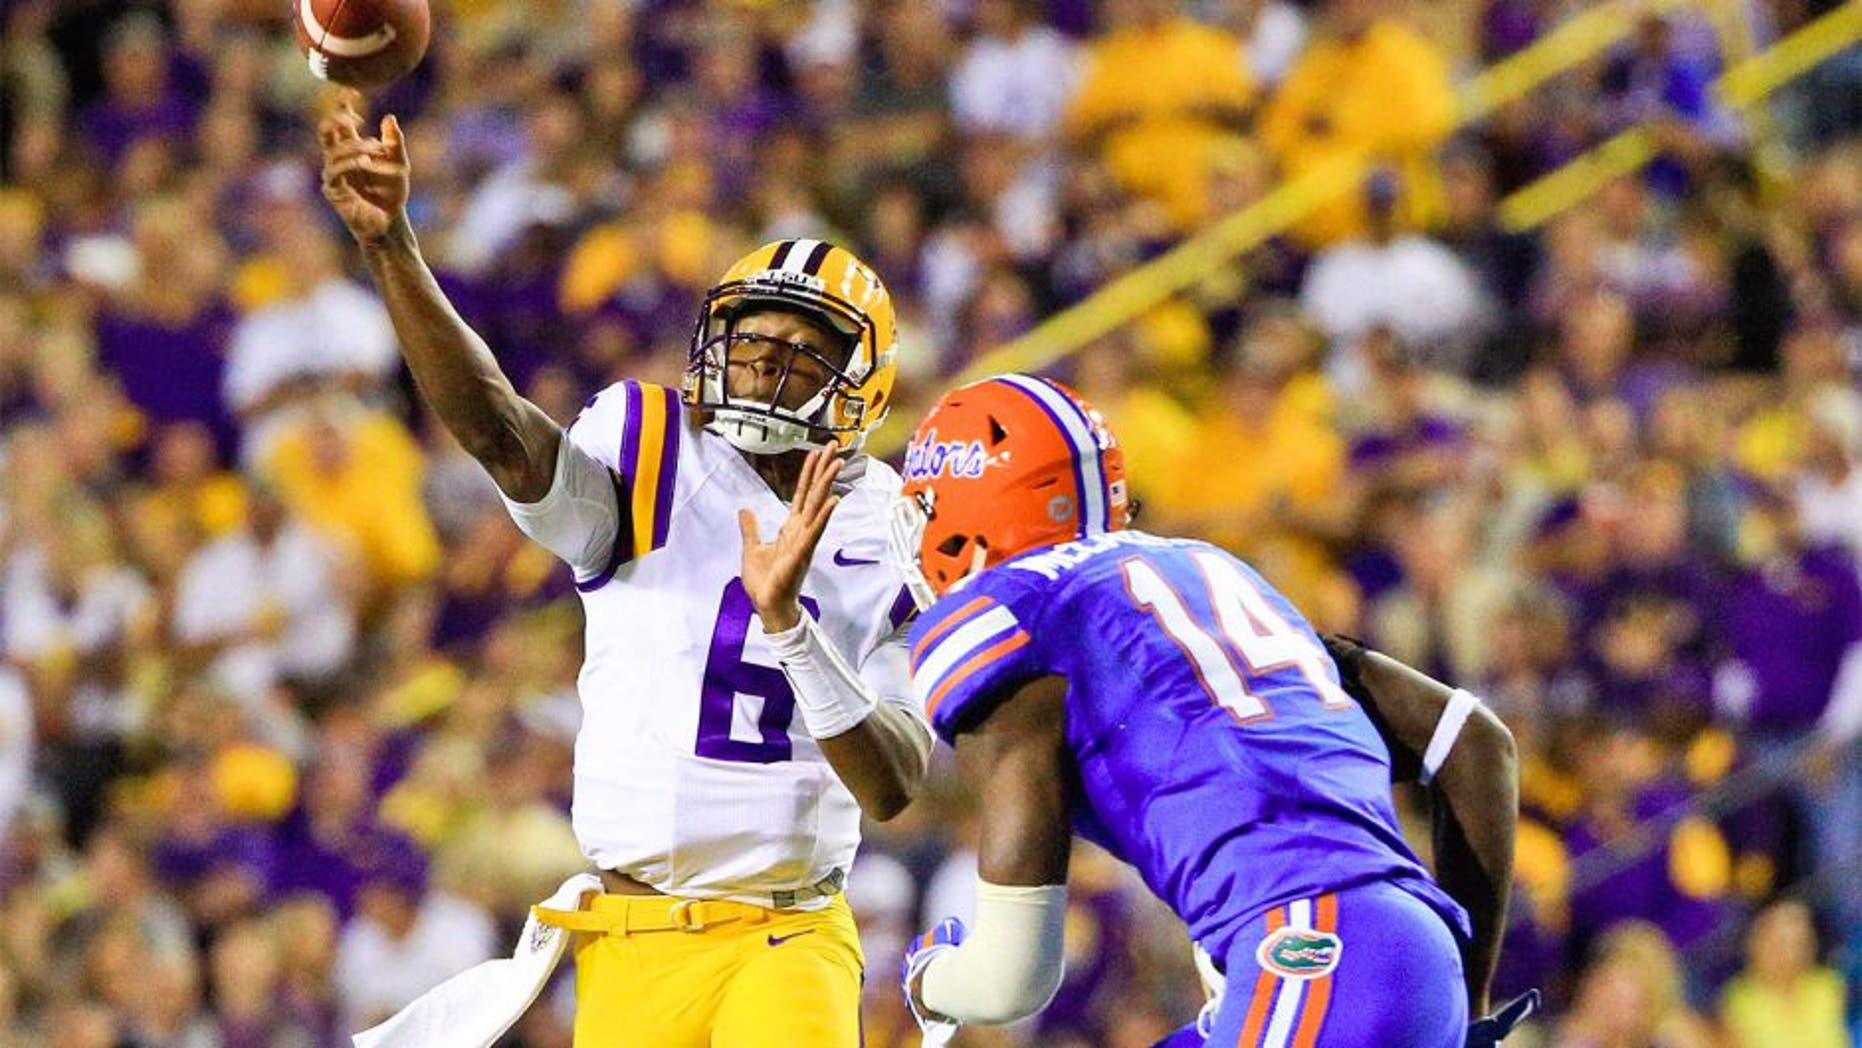 Oct 17, 2015; Baton Rouge, LA, USA; LSU Tigers quarterback Brandon Harris (6) throws as Florida Gators defensive lineman Alex McCalister (14) defends during the second quarter of a game at Tiger Stadium. Mandatory Credit: Derick E. Hingle-USA TODAY Sports